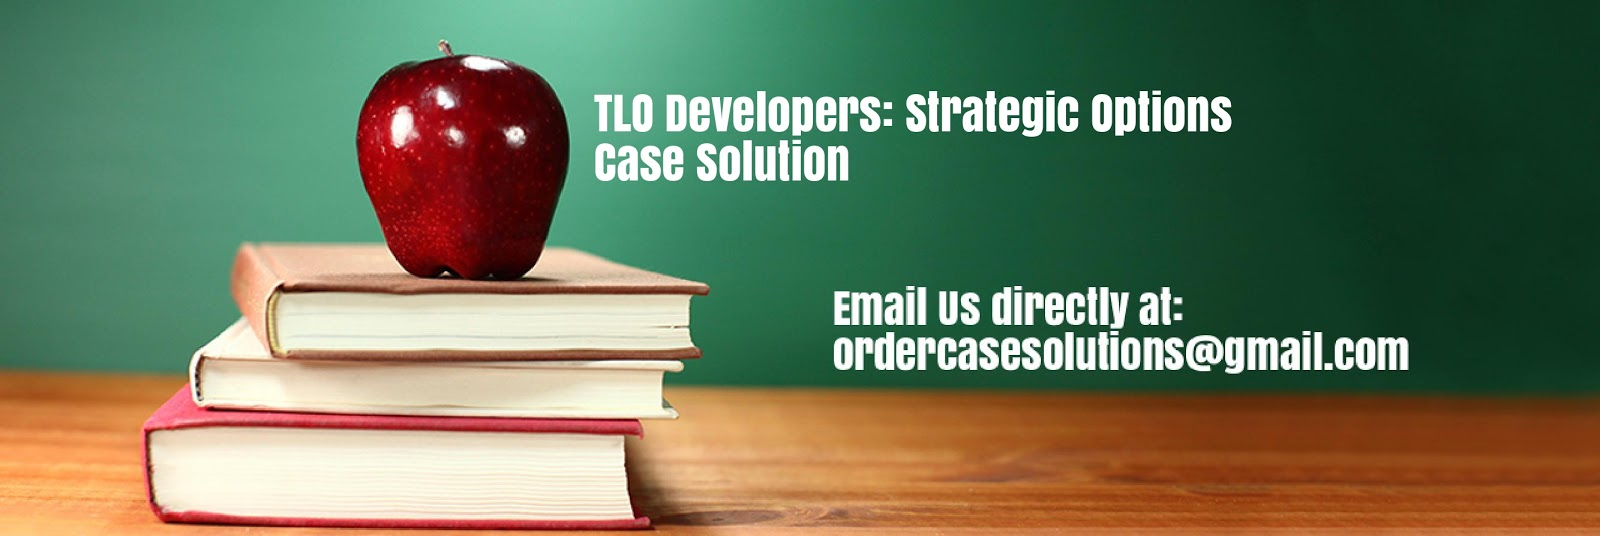 TLO Developers: Strategic Options Case Study Analysis